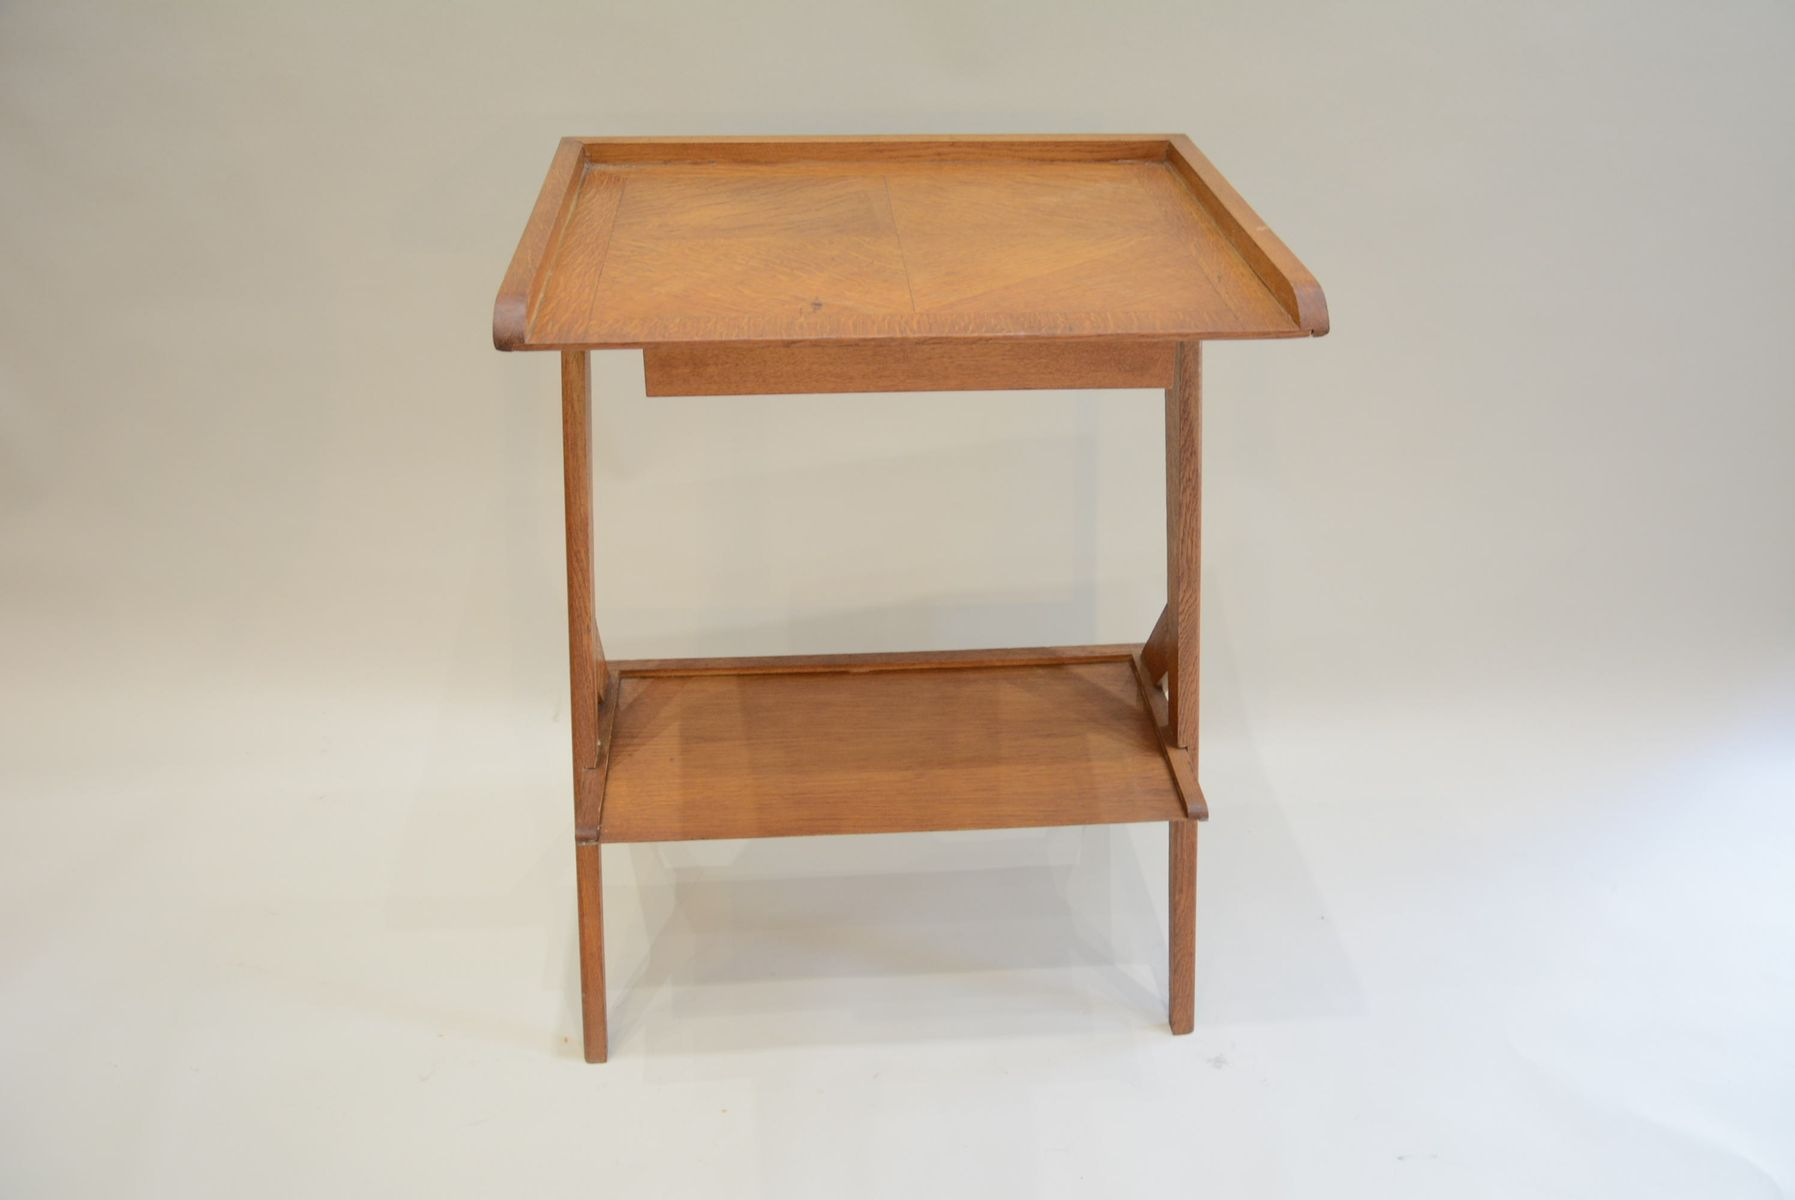 Table d appoint de bureau 1950s en vente sur pamono for Table de bureau